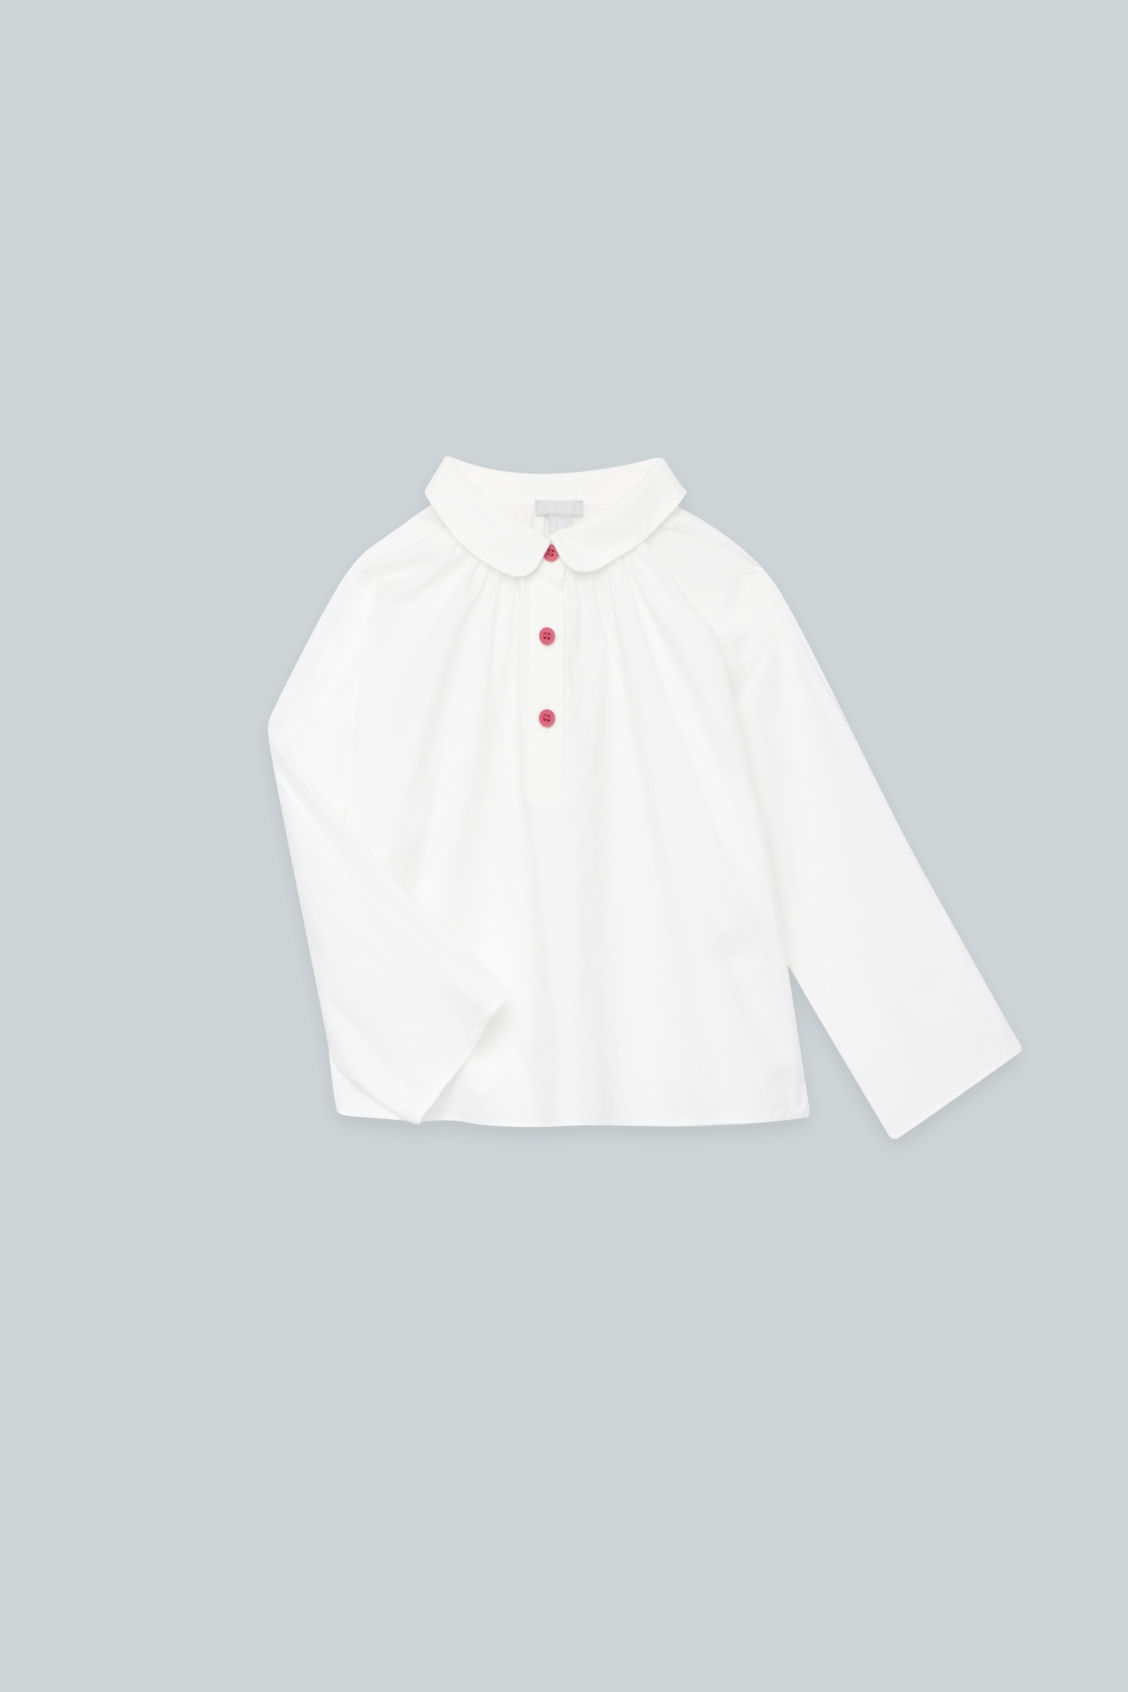 Detailed image of Cos round-collar shirt in white